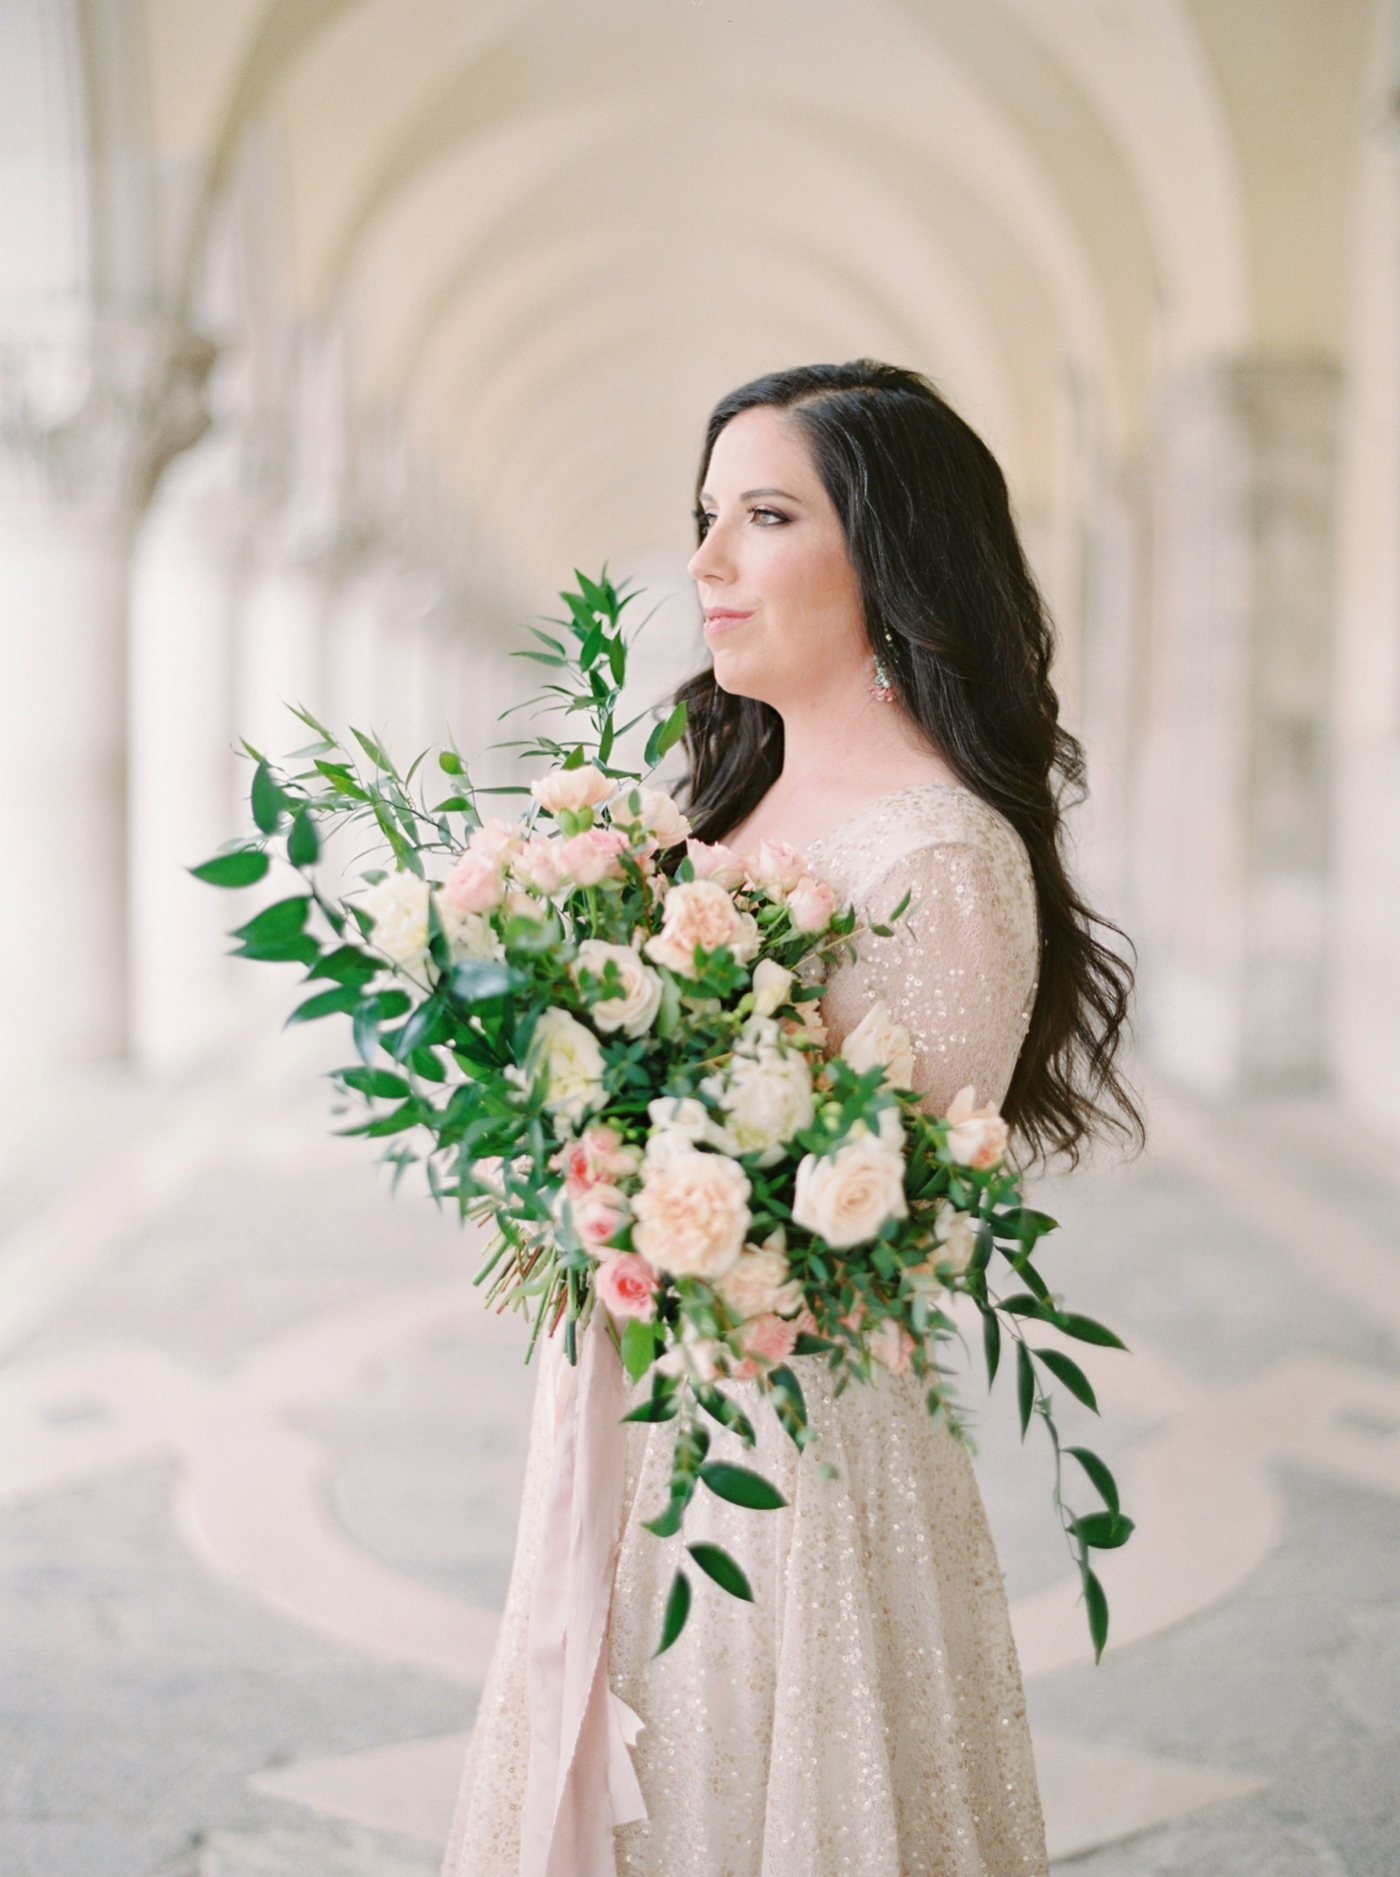 Venice italy wedding photographers | long sleeve wedding dress | italy vow renewal | justine milton fine art film photographer | bridal portraits bridal bouquet